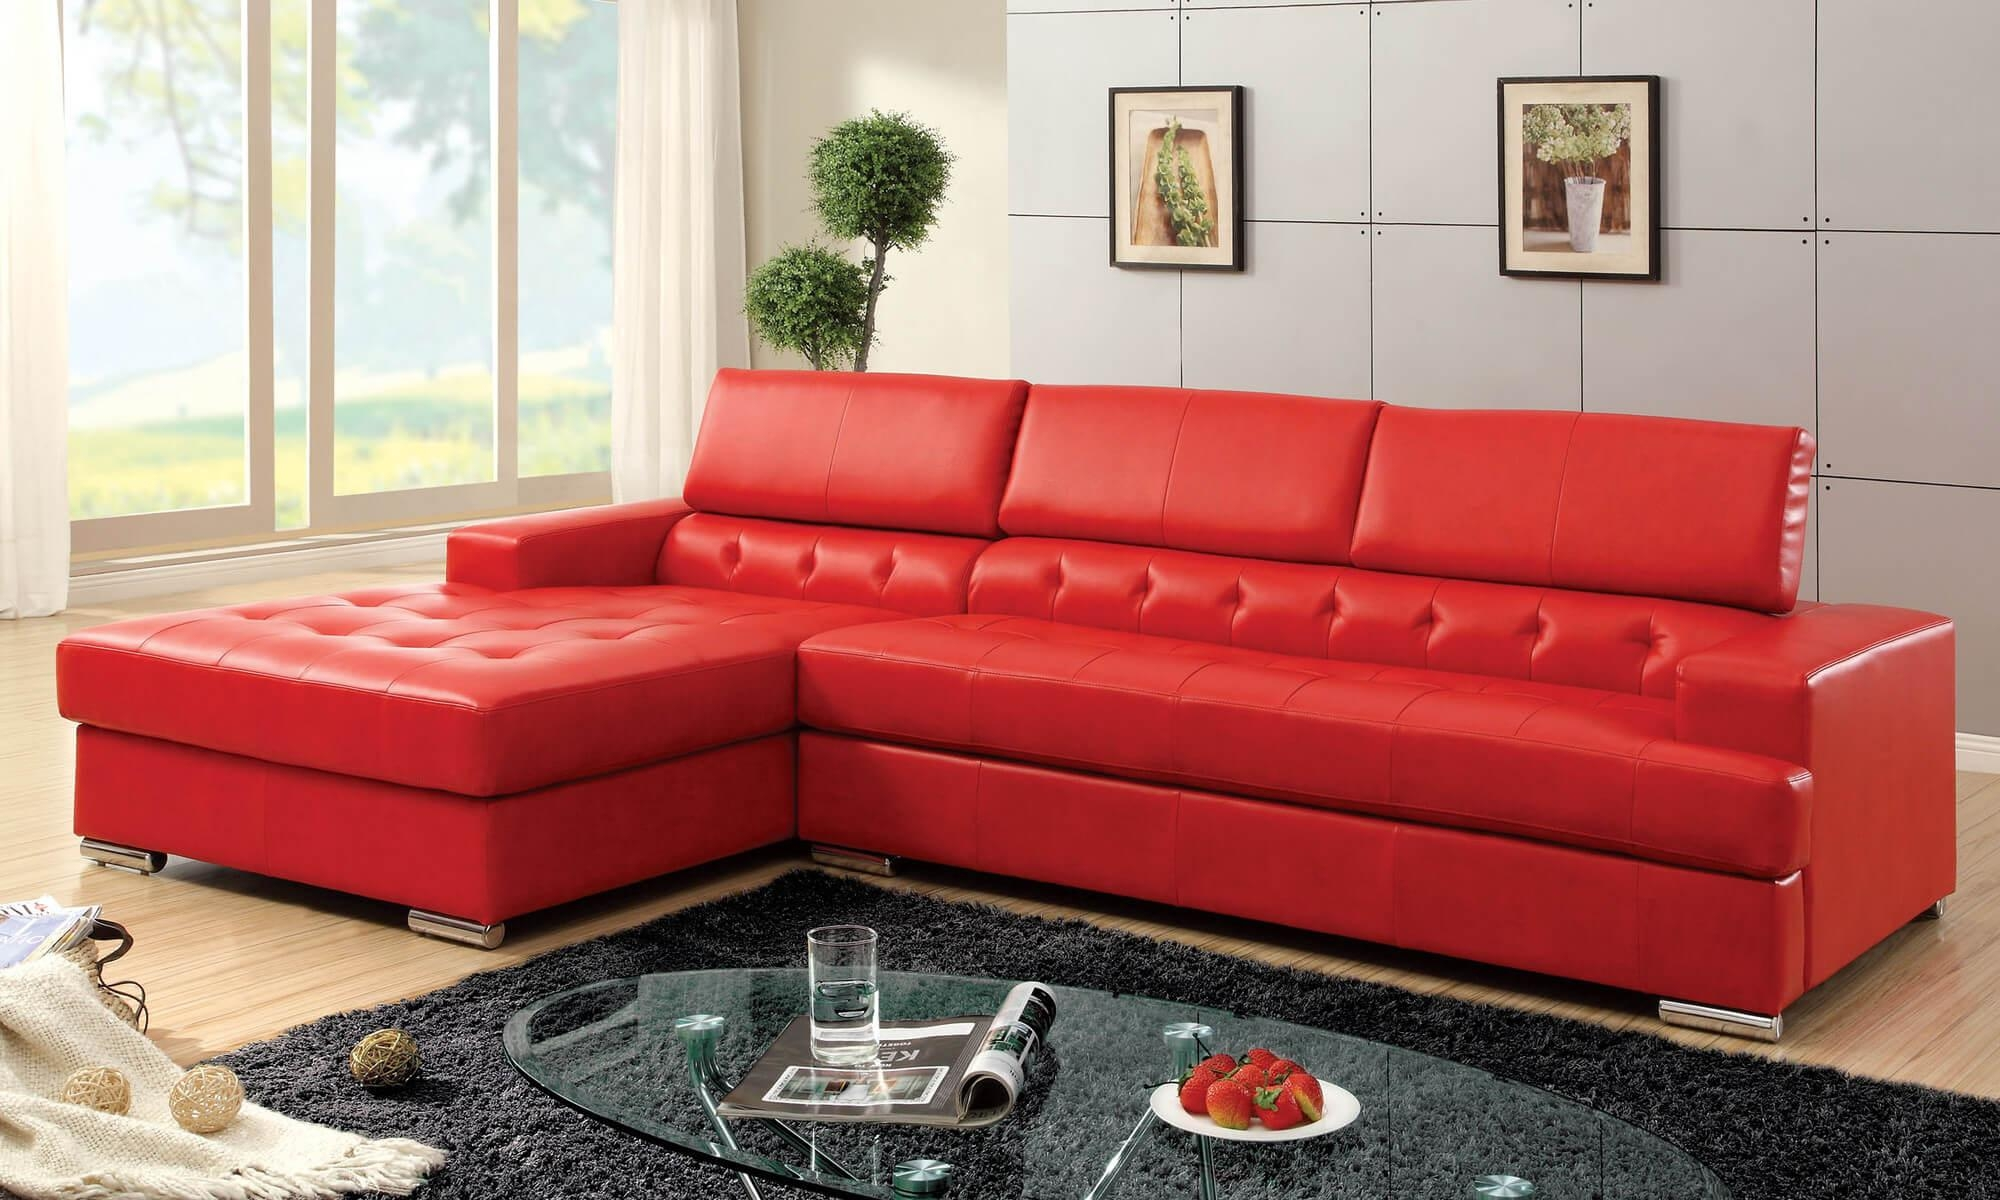 Sofas : Fabulous Pottery Barn Bedroom Furniture Flexsteel Leather Throughout Vintage Leather Sectional Sofas (Image 17 of 20)